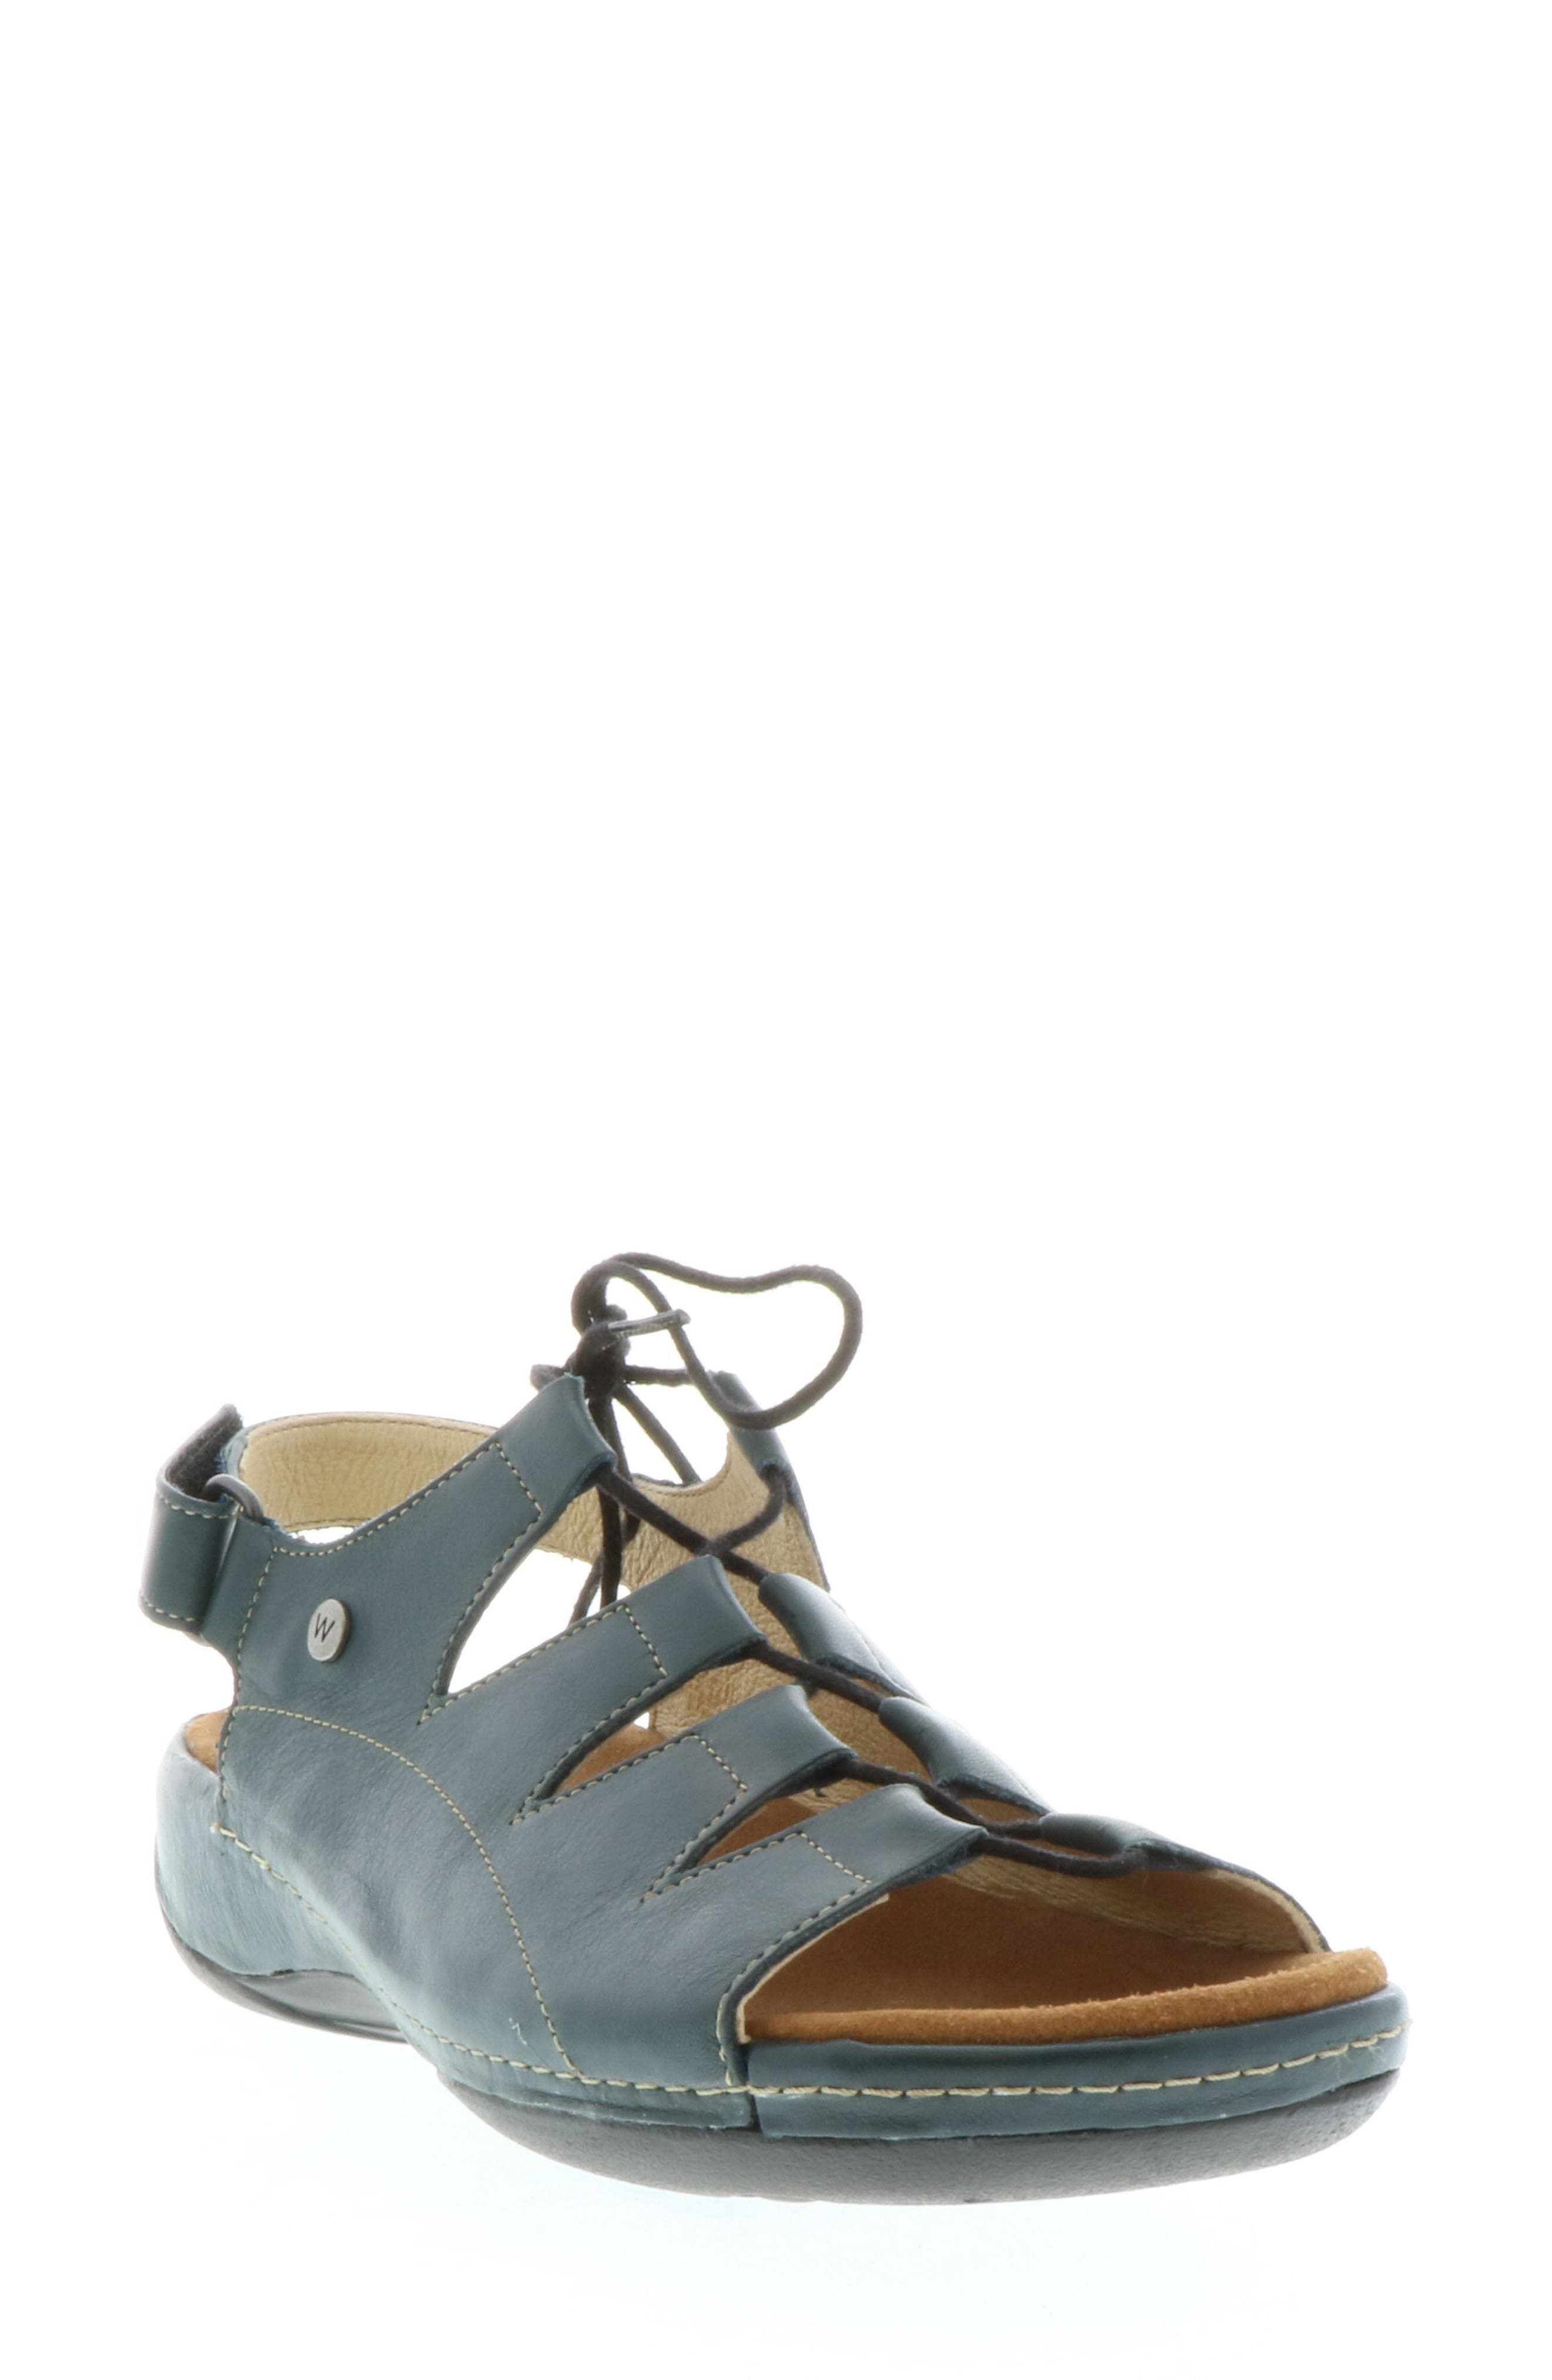 Kite Lace-Up Sandal,                             Main thumbnail 1, color,                             Navy Leather